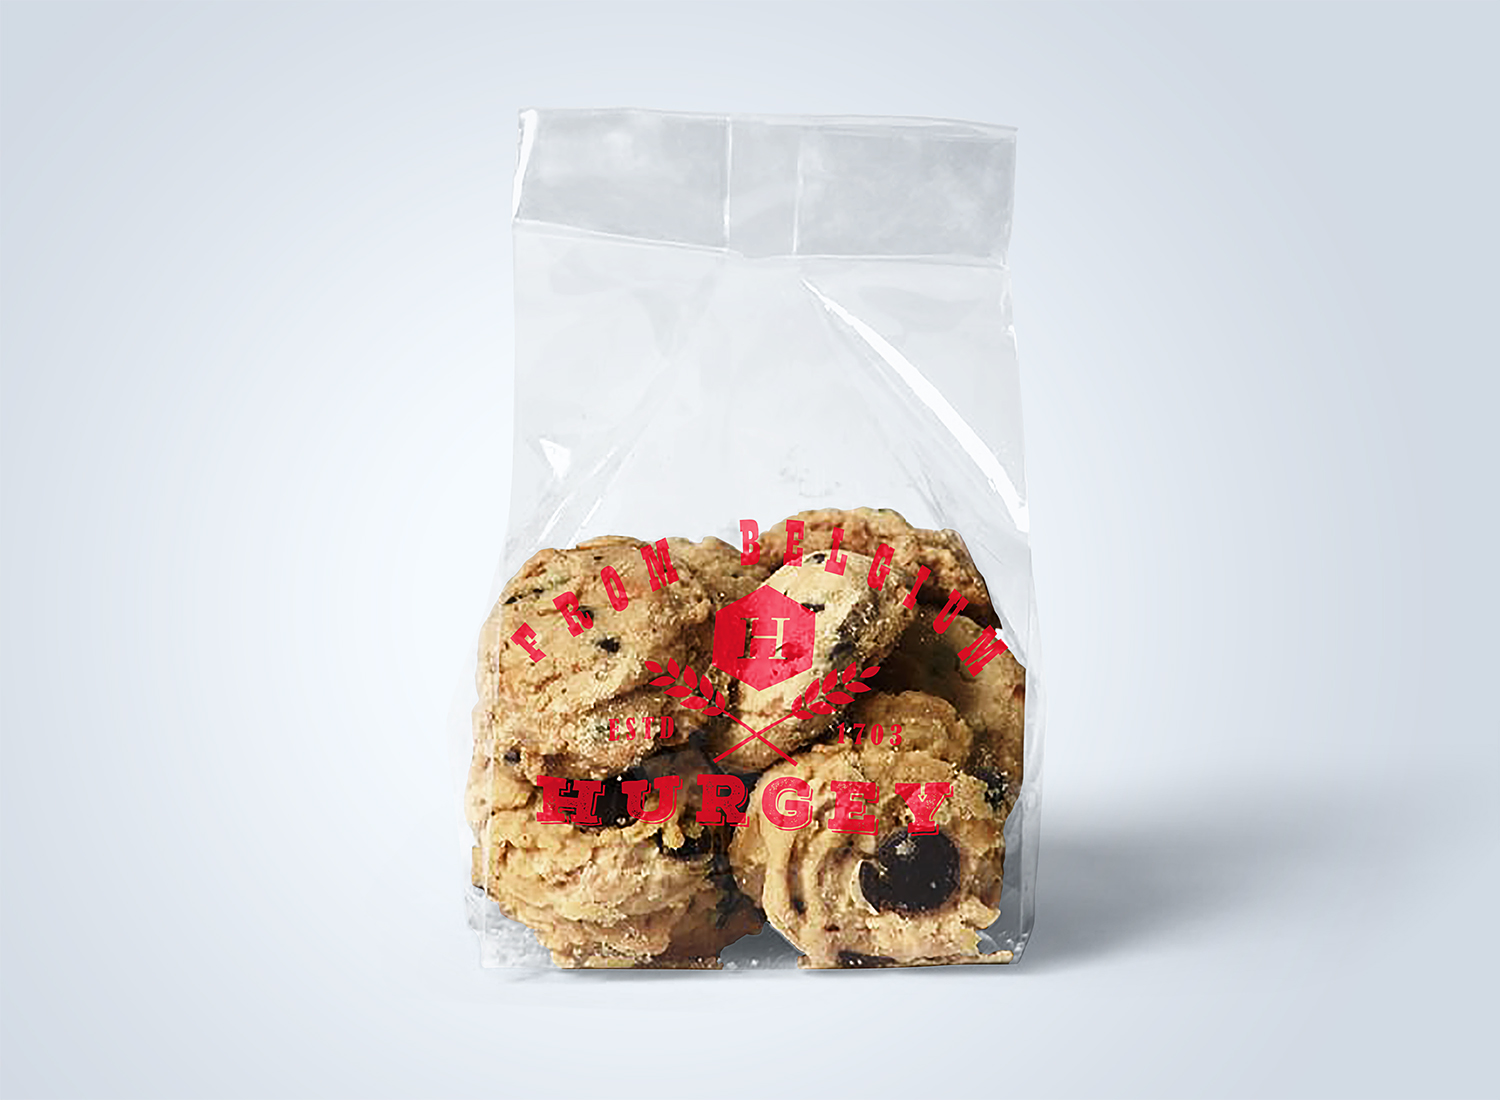 Free Bread and Cookies Plastic Bags Mockup